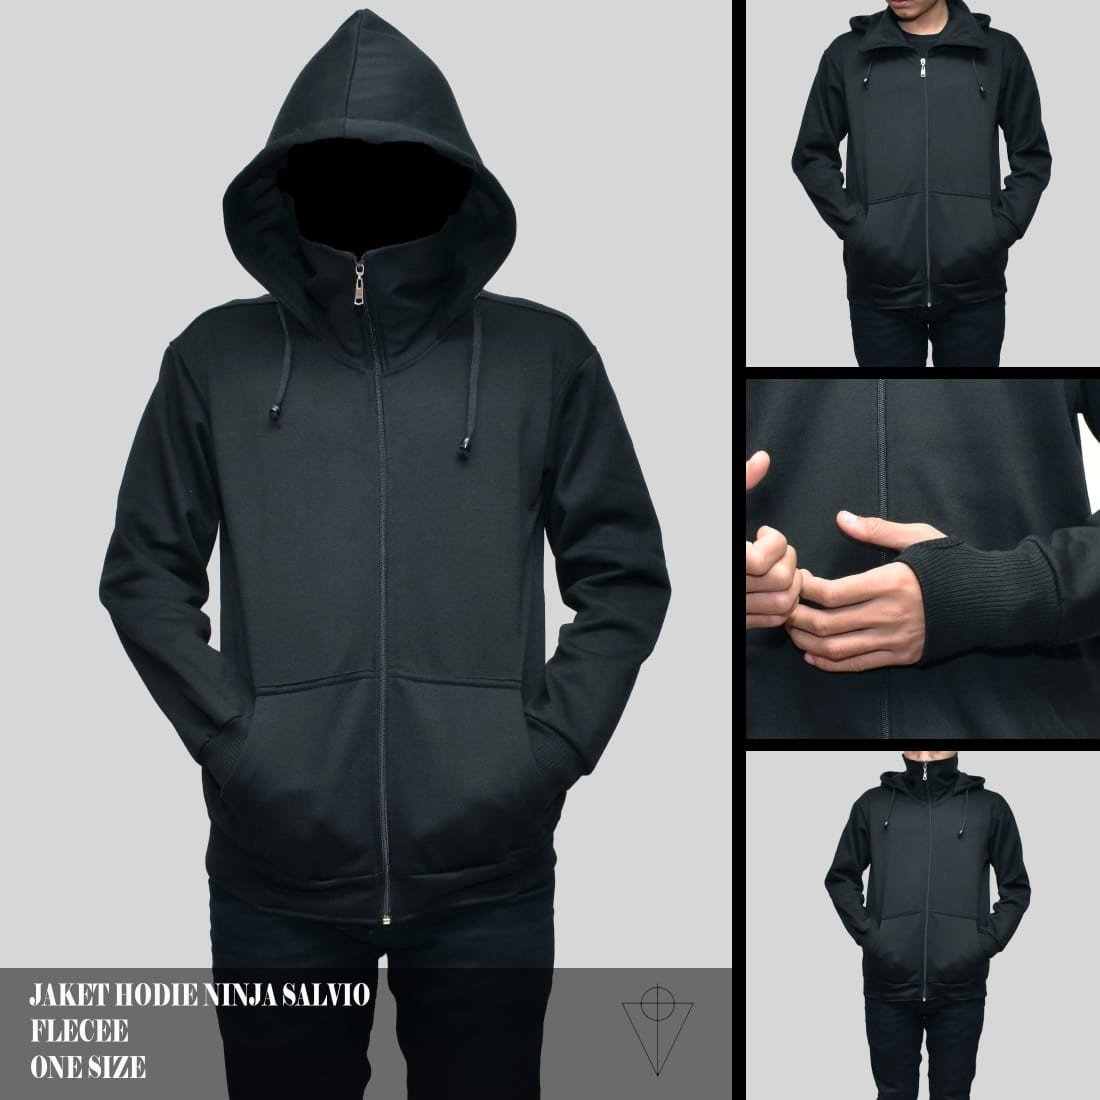 Jual YM Jaket Sweater Ninja Polos - Abu Tua Harga Spesifikasi. Source · 0  replies 0 retweets 0 likes 86de52cae7